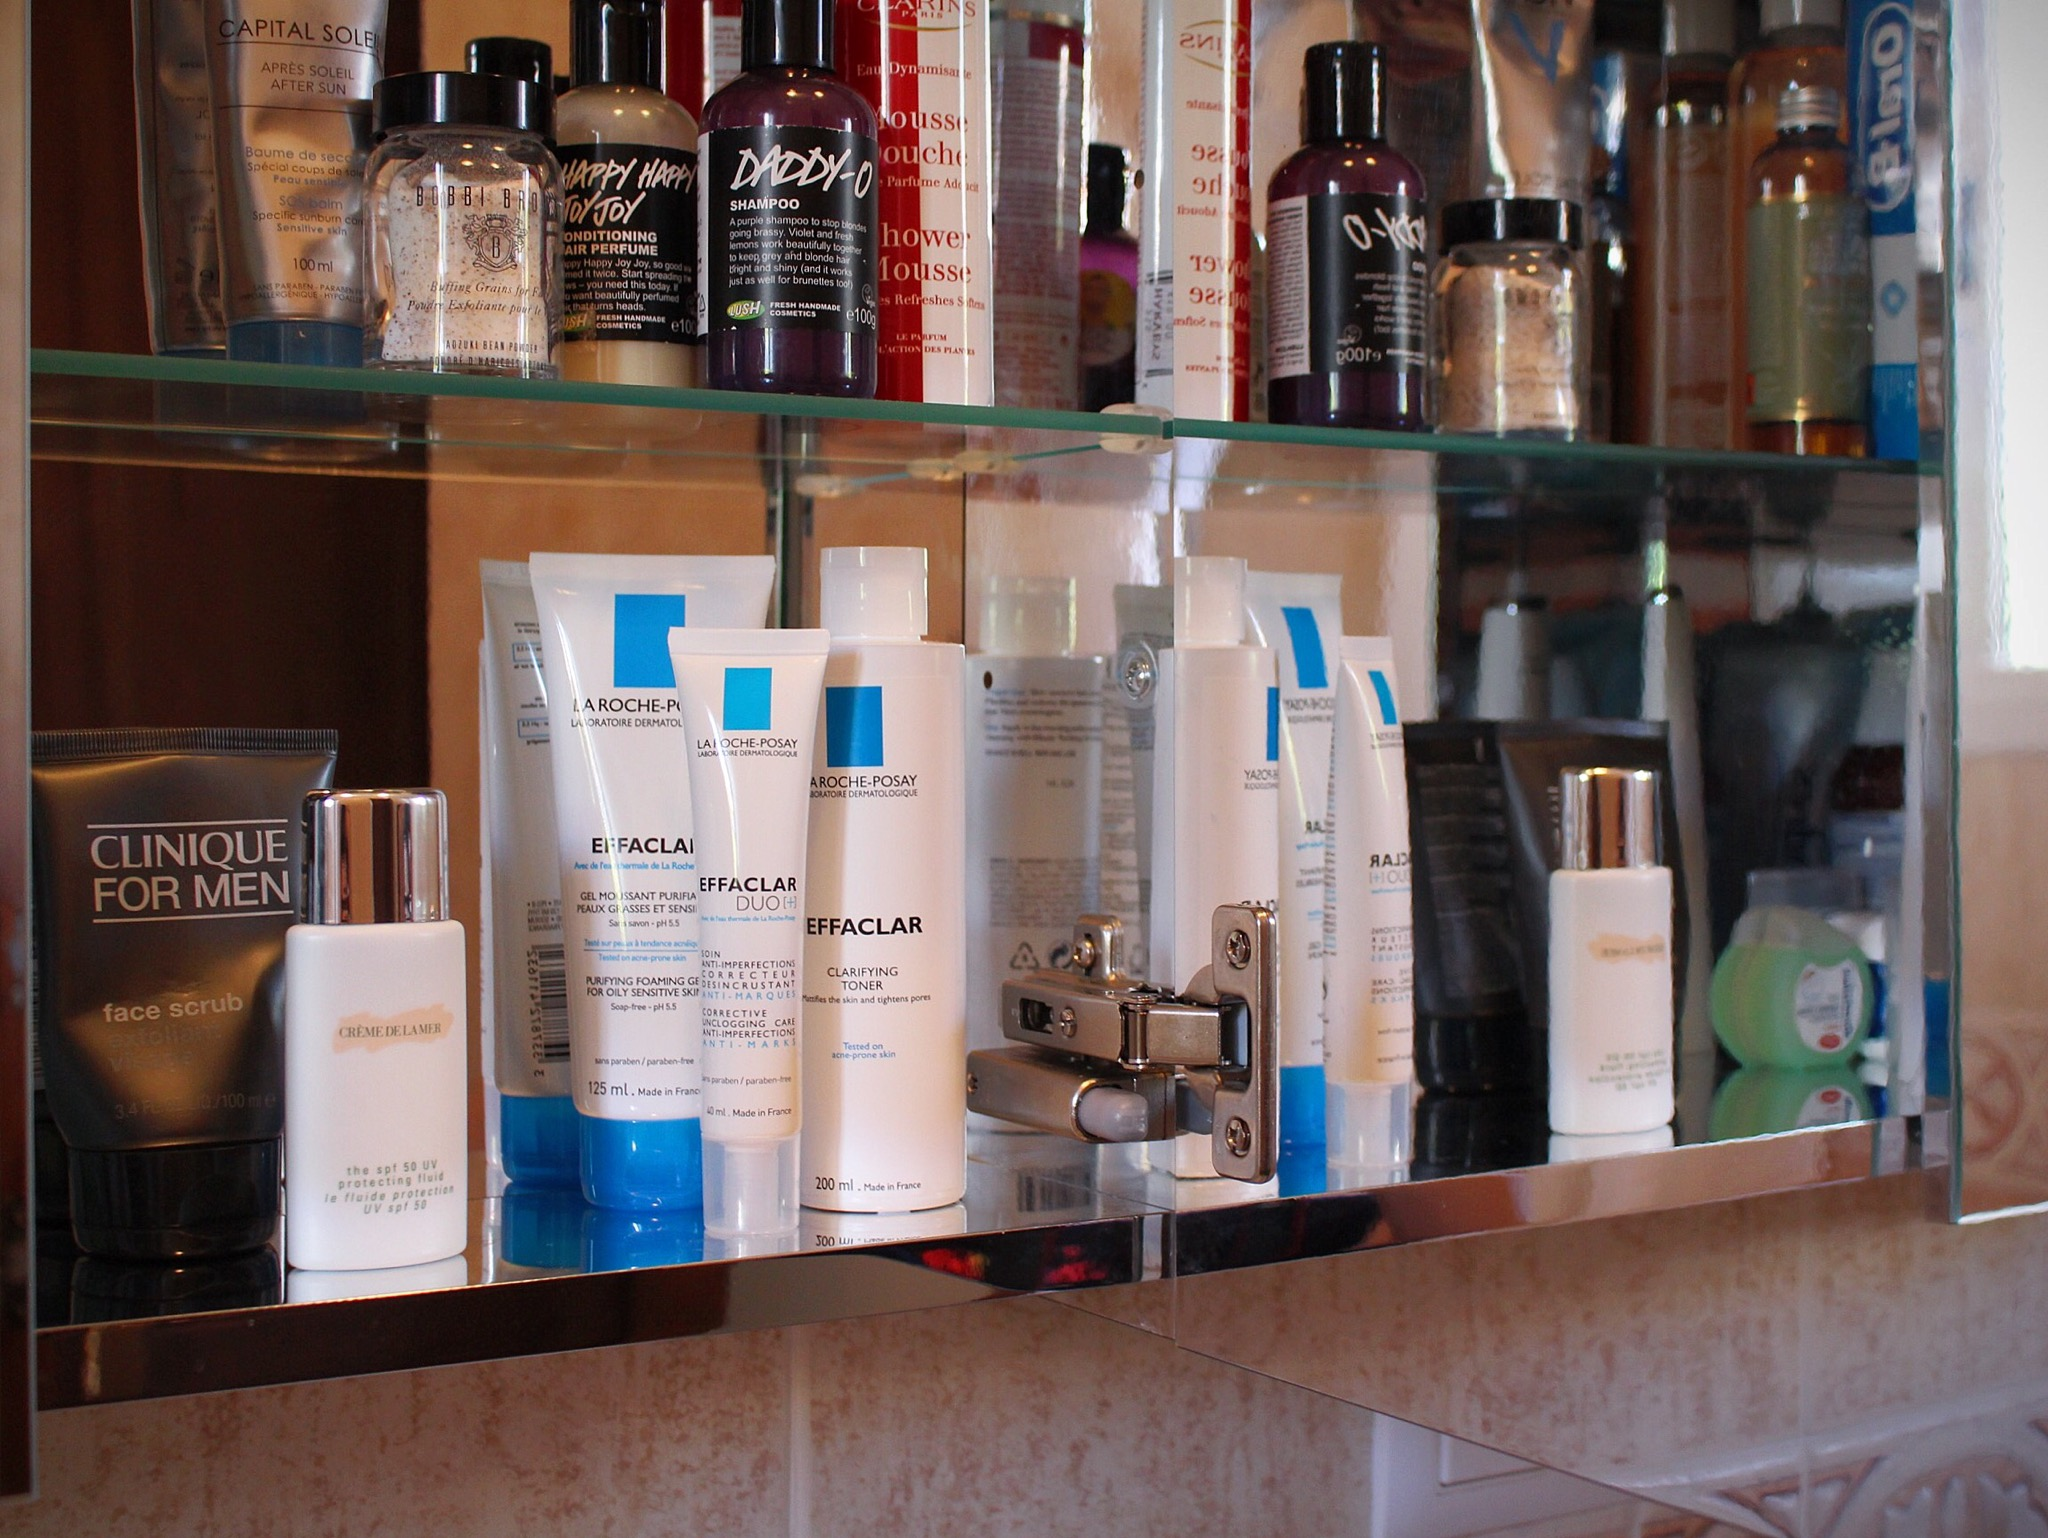 Test Driving La Roche-Posay Effaclar 3 Step Anti-Blemish System: The Results #Sponsored